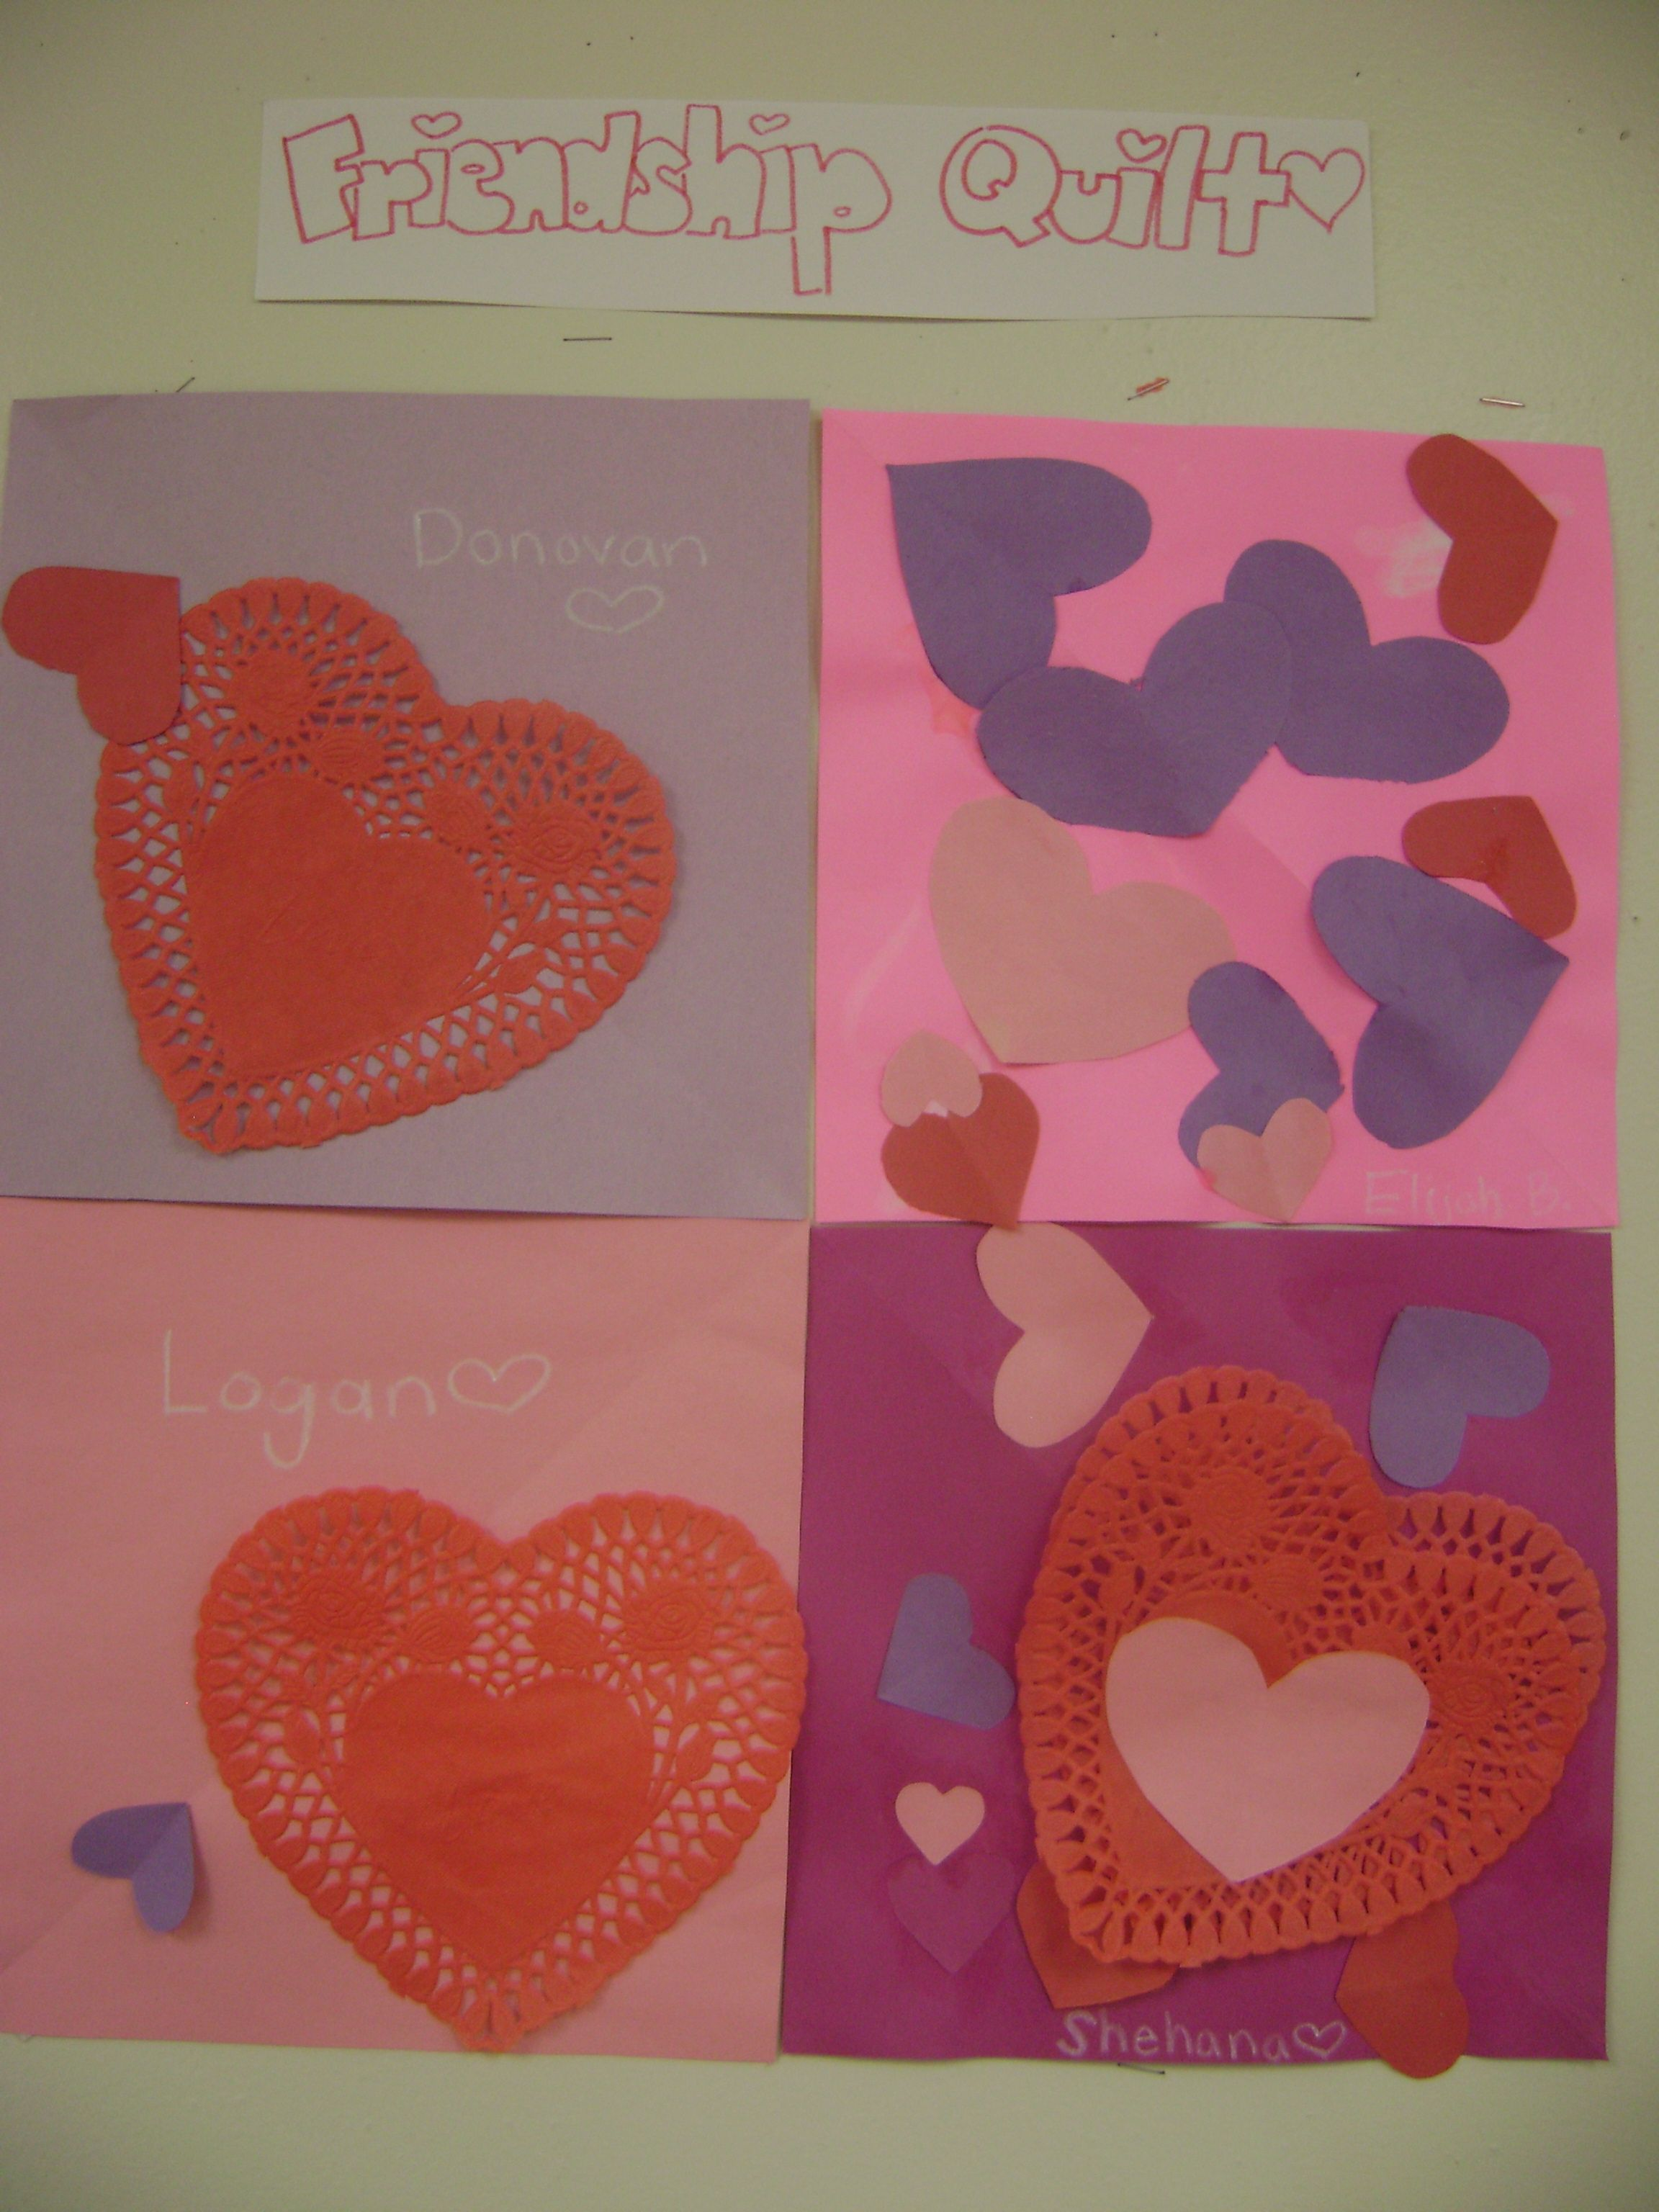 Friendship quilt february toddler activities pinterest for Preschool crafts for february